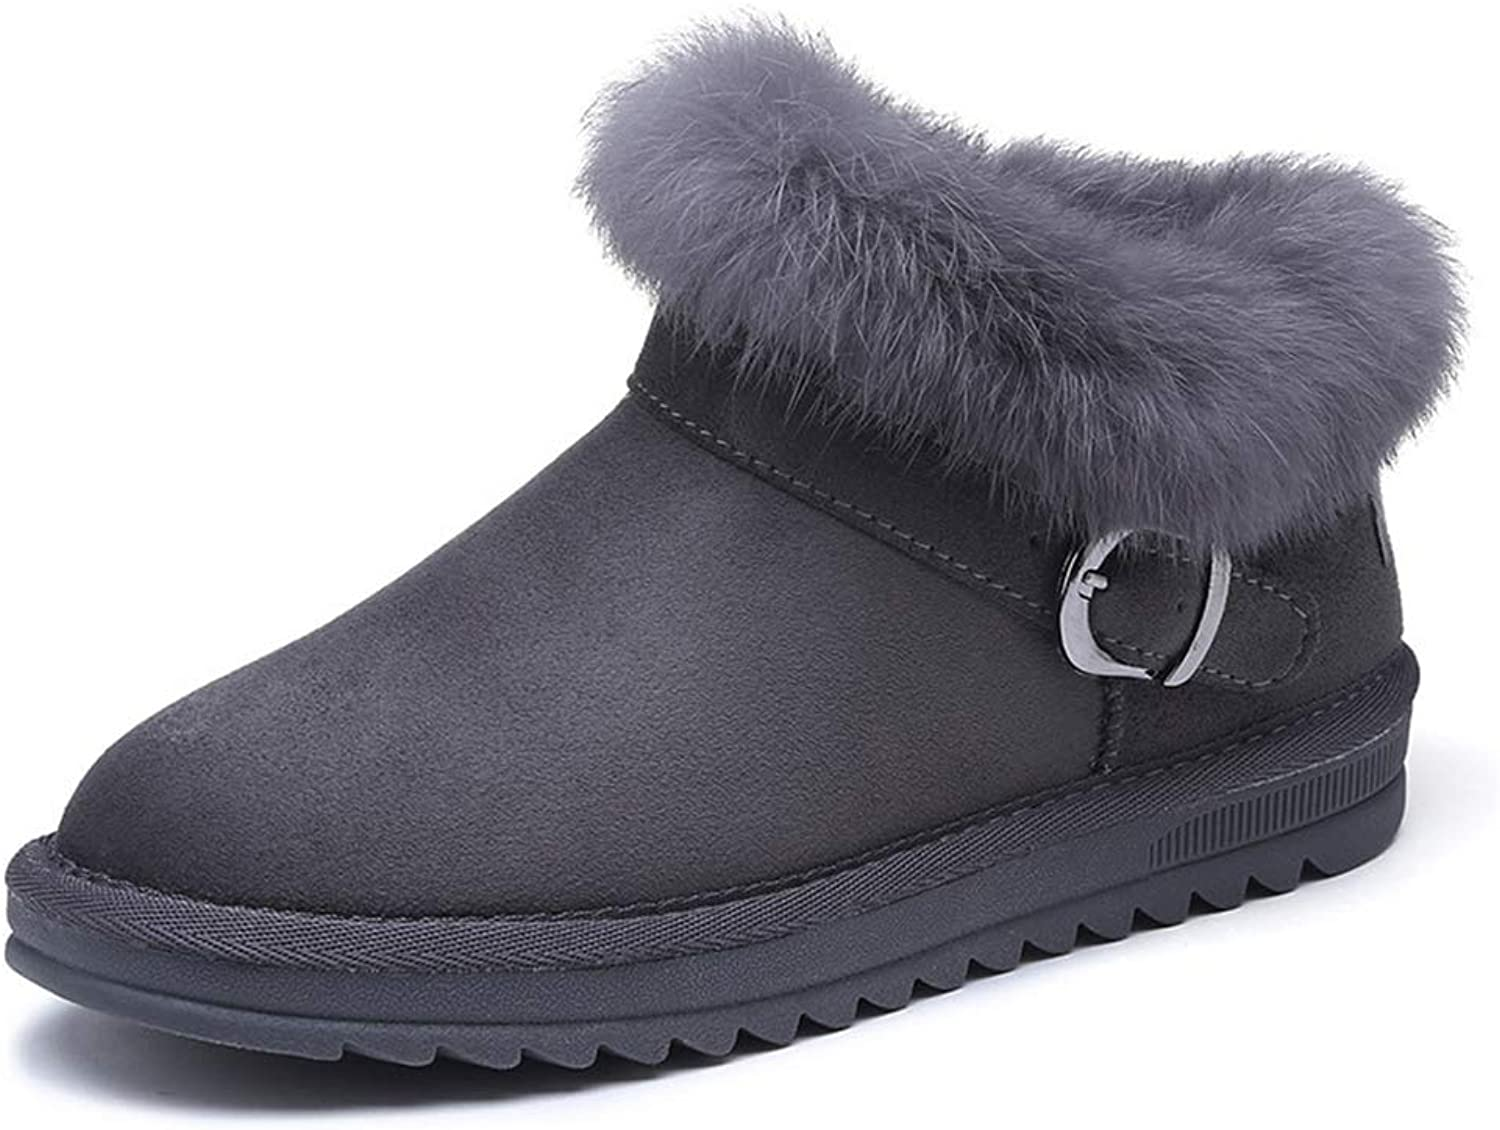 Excellent.c Winter Women's shoes Warm Boots Snow Boots Flat Boots